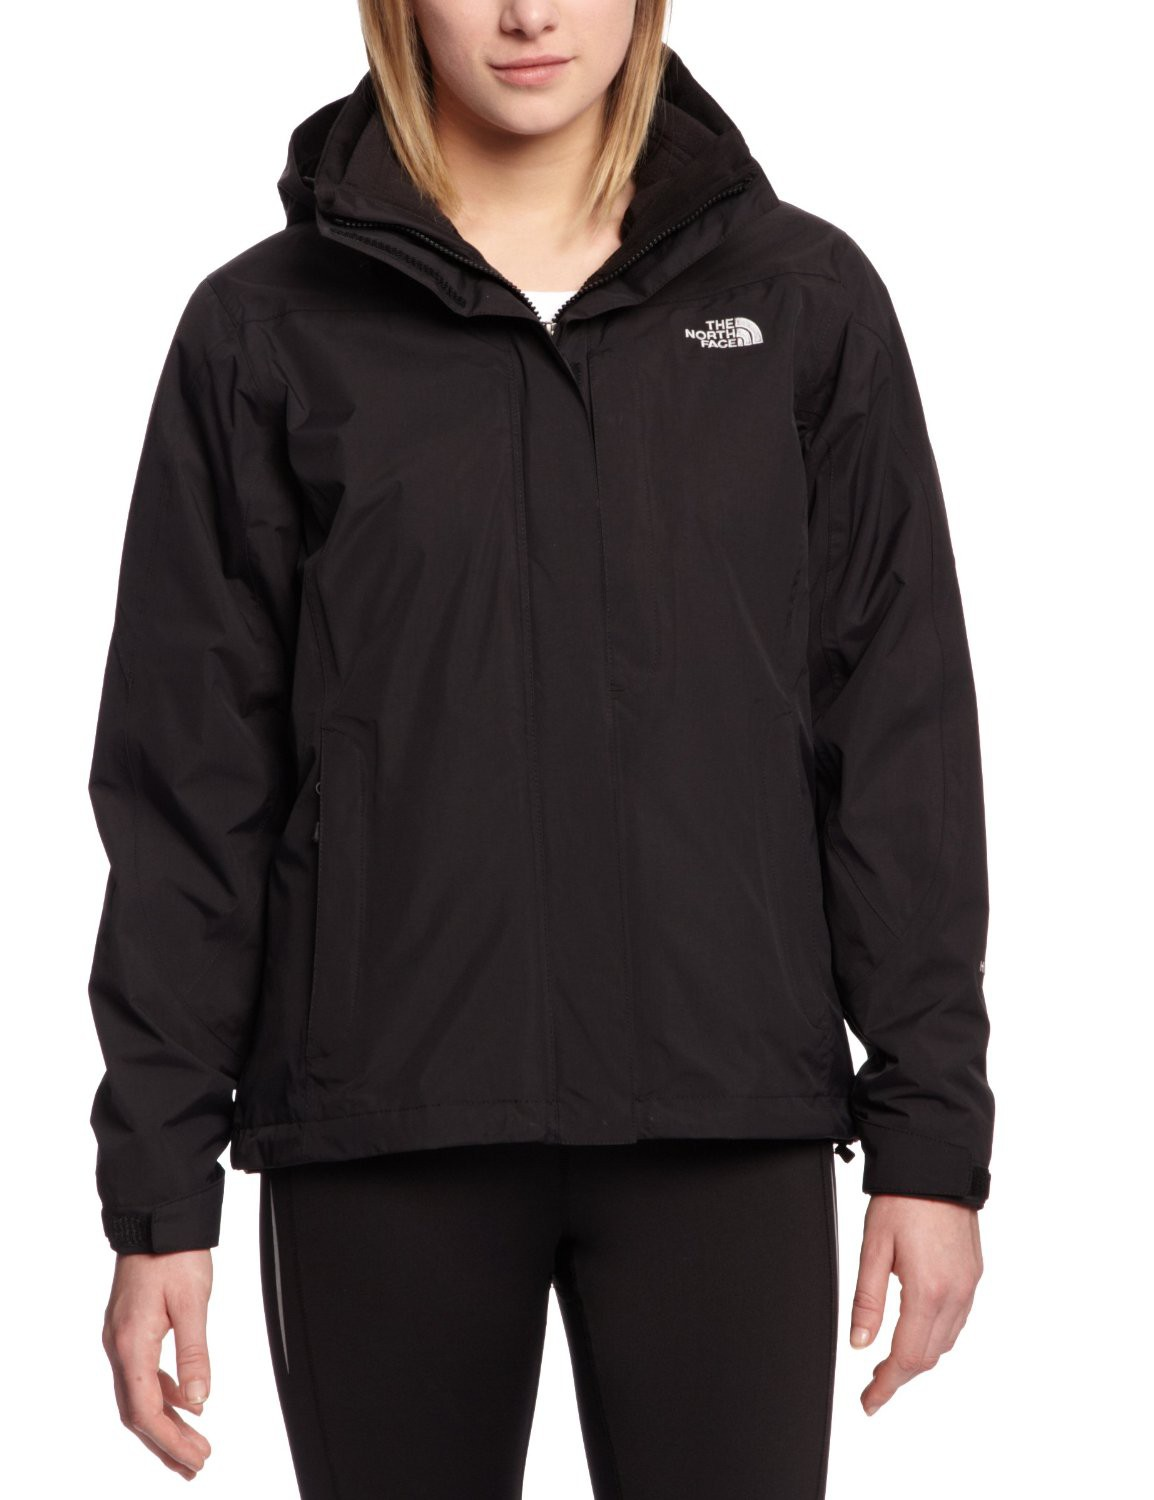 the north face w evolution damen funktion doppeljacke 3 in 1 jacke black xs xl kaufen bei hood. Black Bedroom Furniture Sets. Home Design Ideas